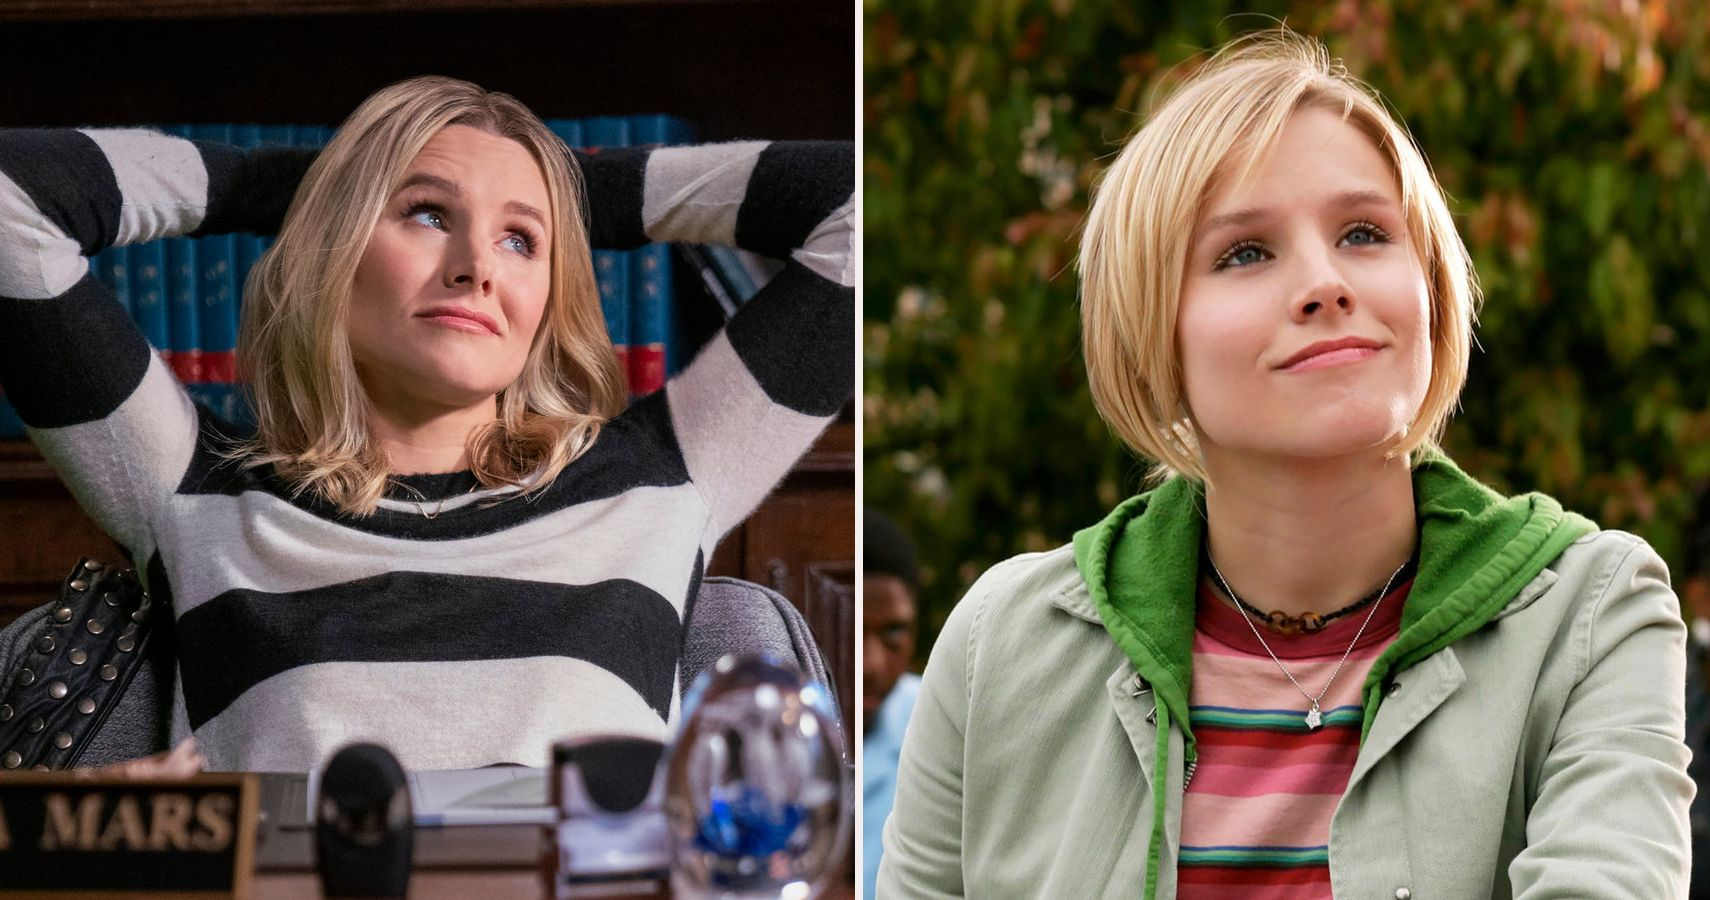 Veronica Mars: Every Season Ranked, According To The Rotten Tomatoes Audience Score